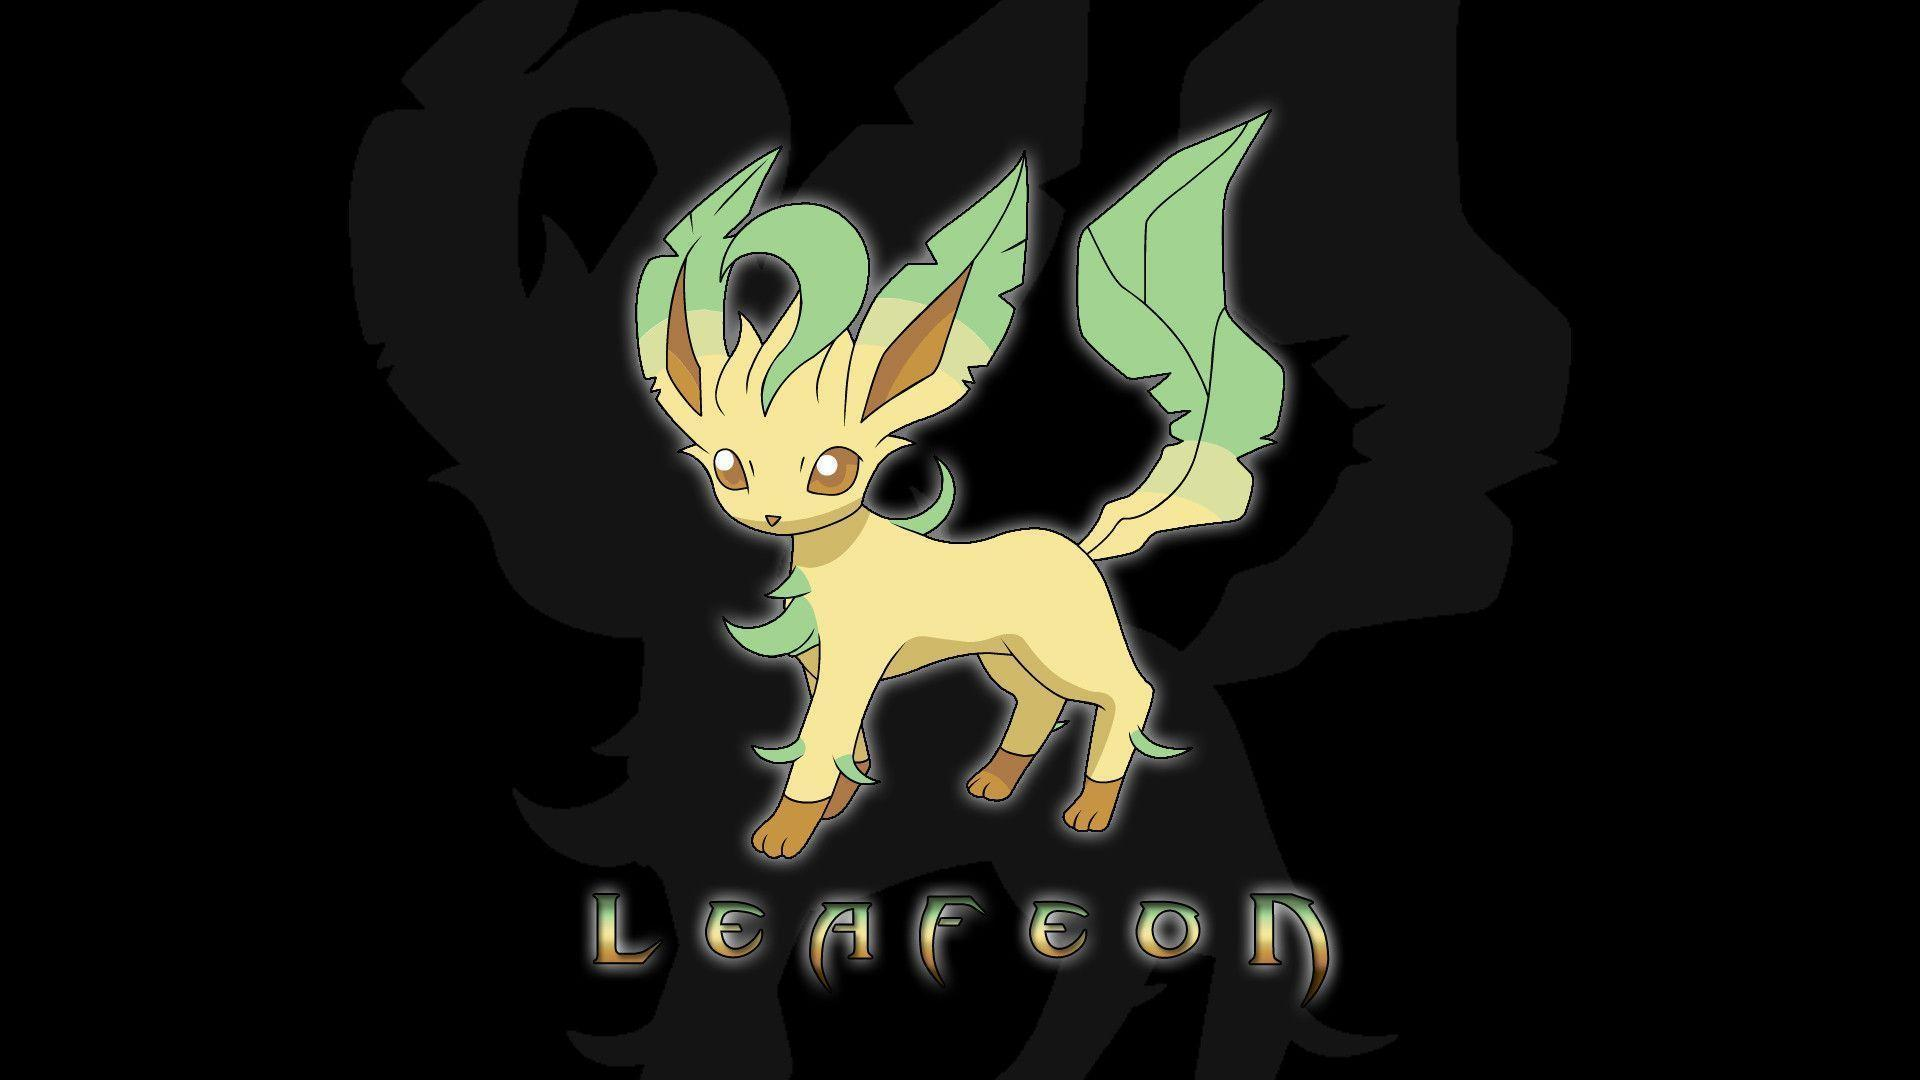 Wallpapers For > Pokemon Leafeon Wallpapers